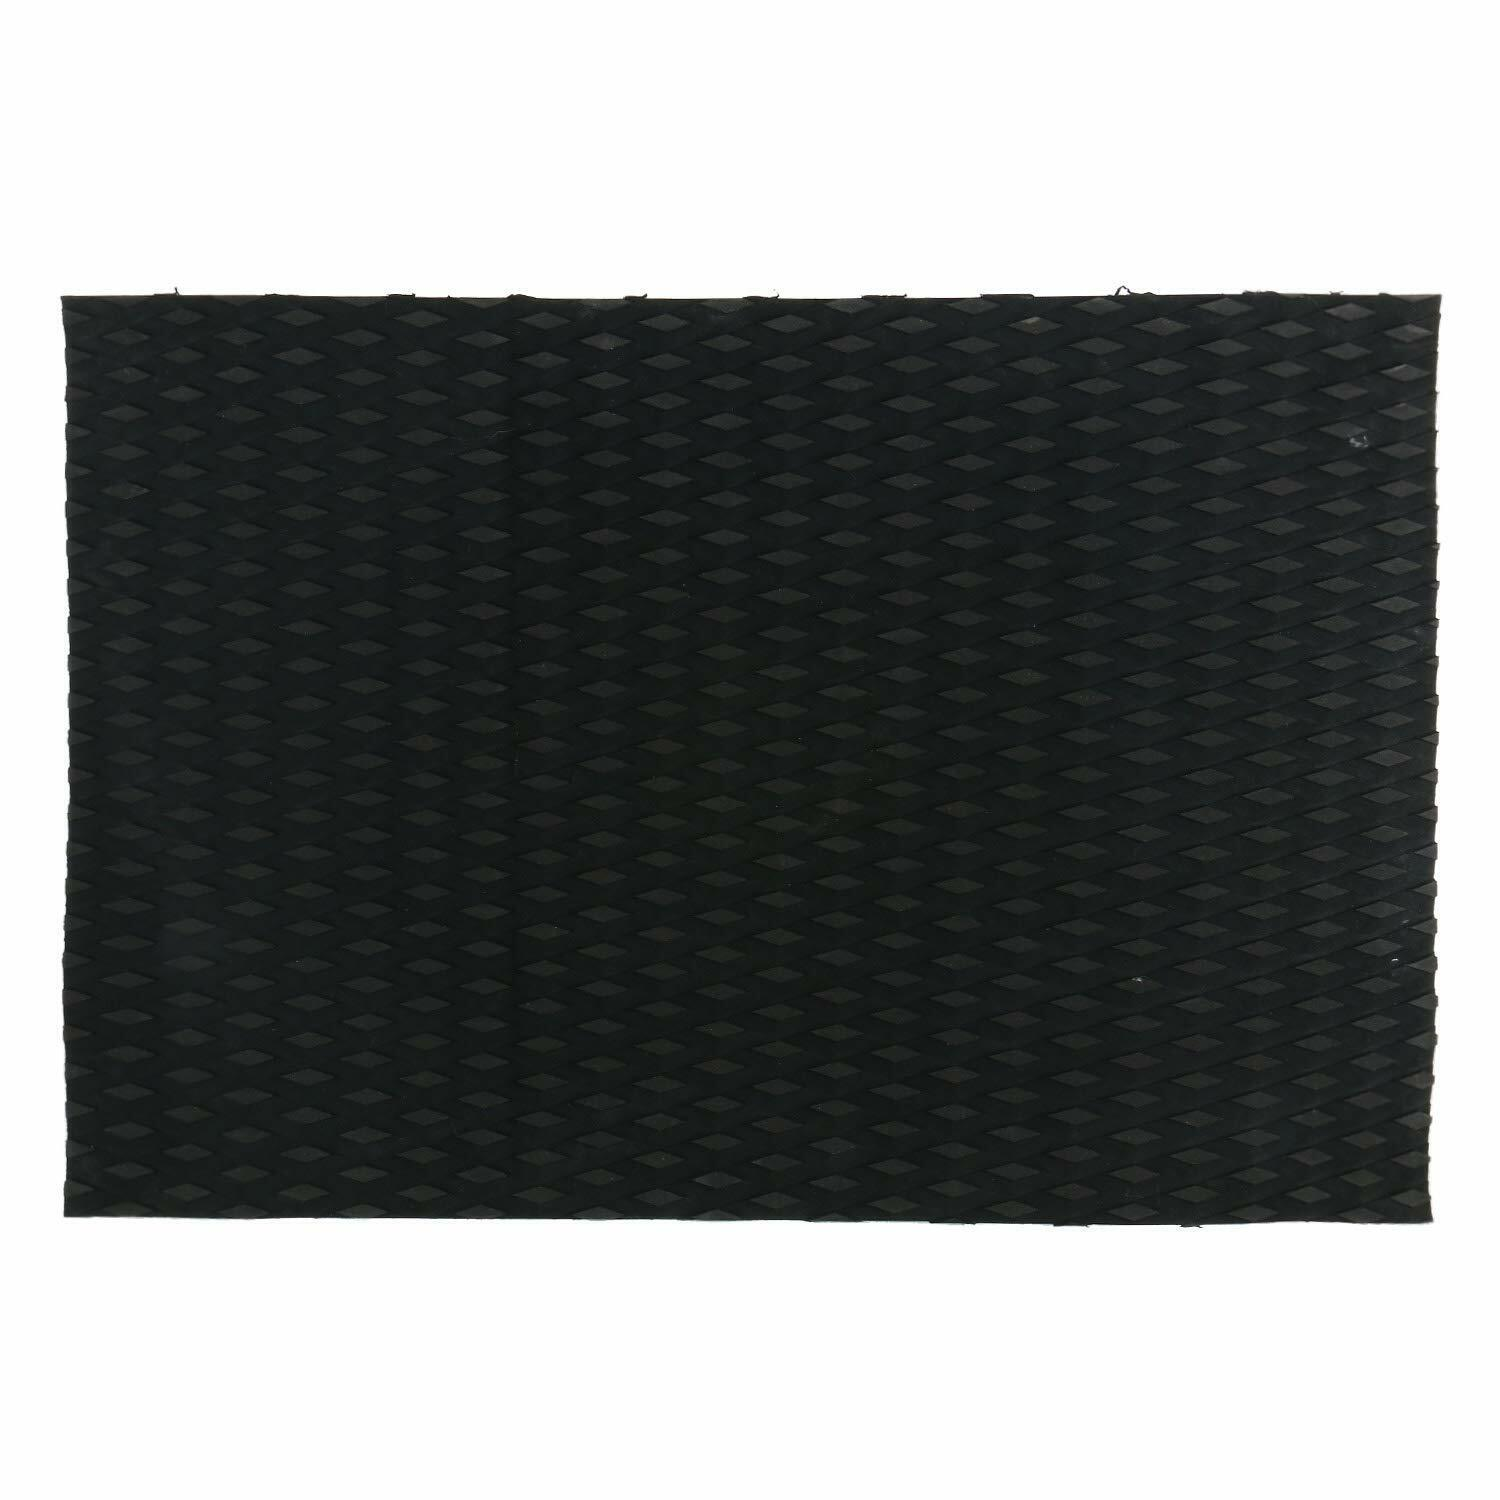 30in x 20in,Black Kayaks Surfboards,Skimboards Amarine Made 2-Pack Universal Non-Slip Traction Pad Deck Grip Mat with Trimmable EVA Sheet 3M Adhesive for Boat Decks